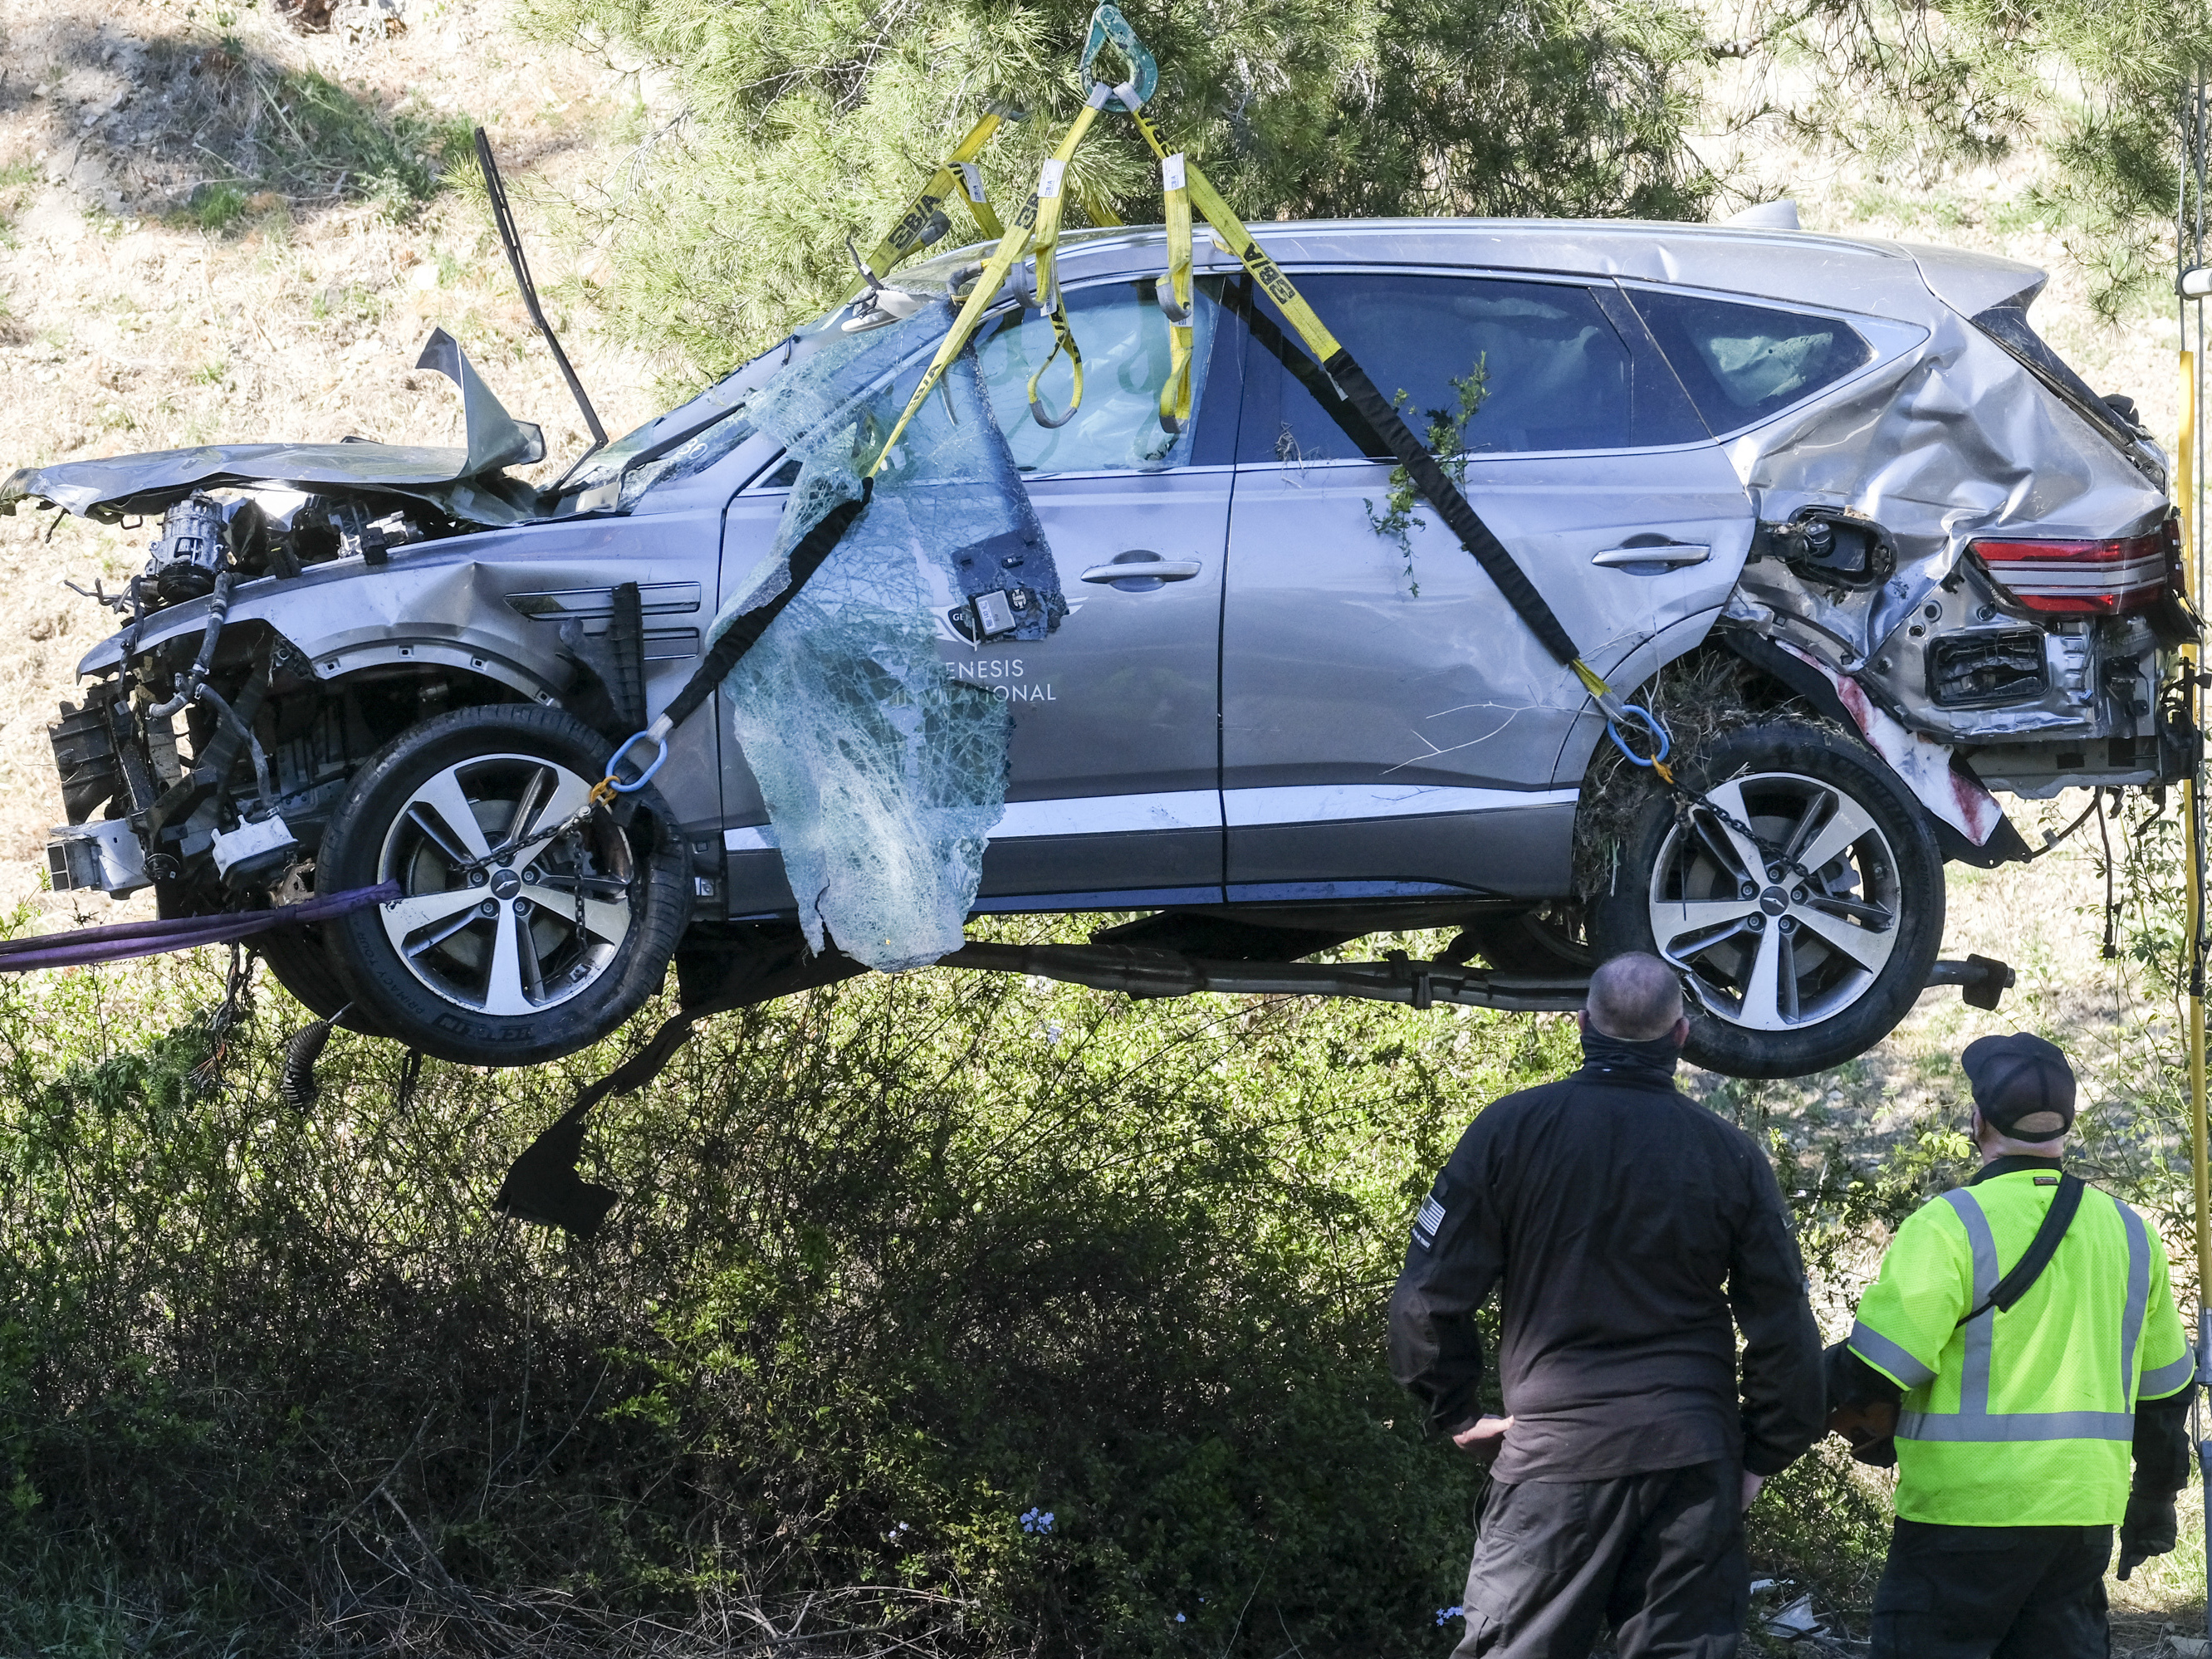 Tiger Woods Crash Caused By Unsafe Speed, LA County Sheriff Says